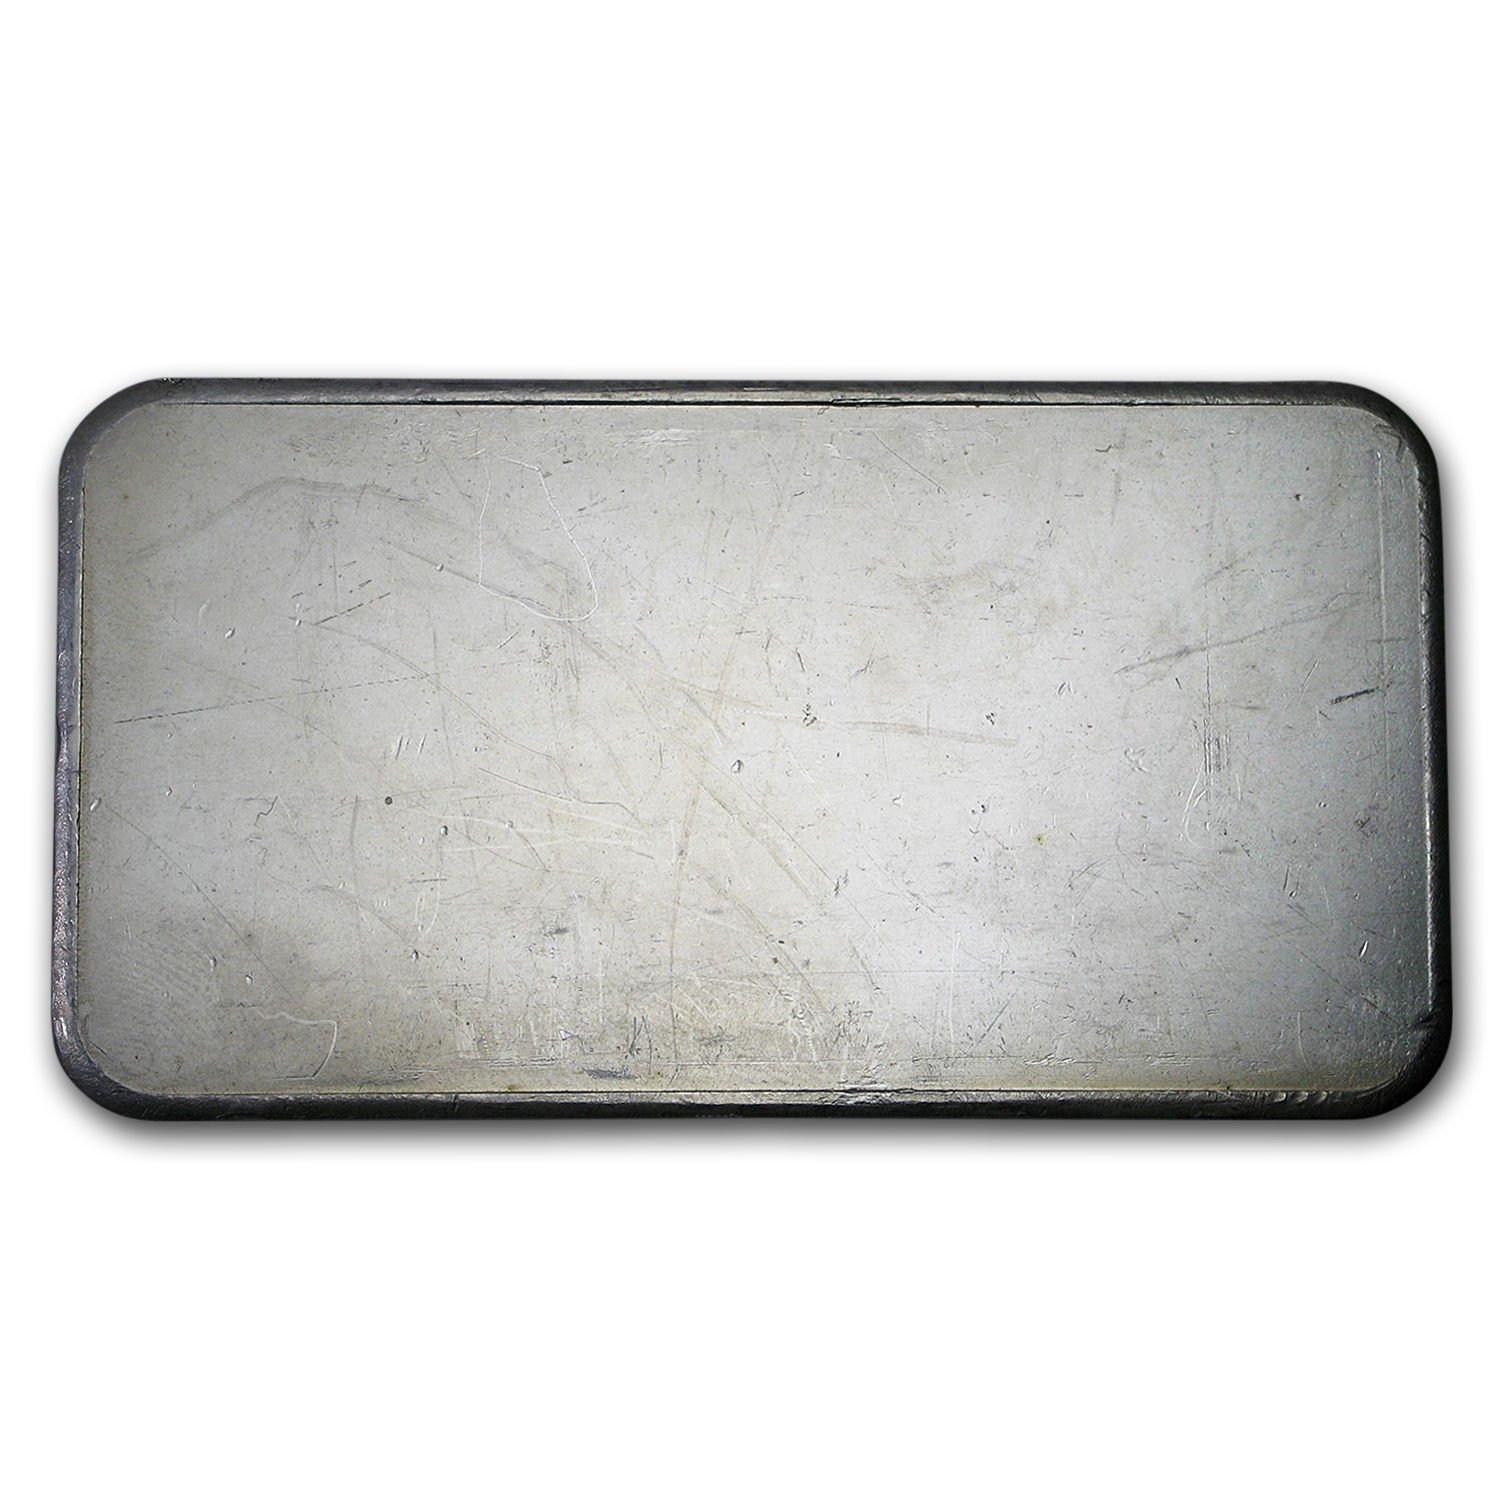 10 oz Silver Bar - Engelhard (Wide/Pressed, Bull Logo)